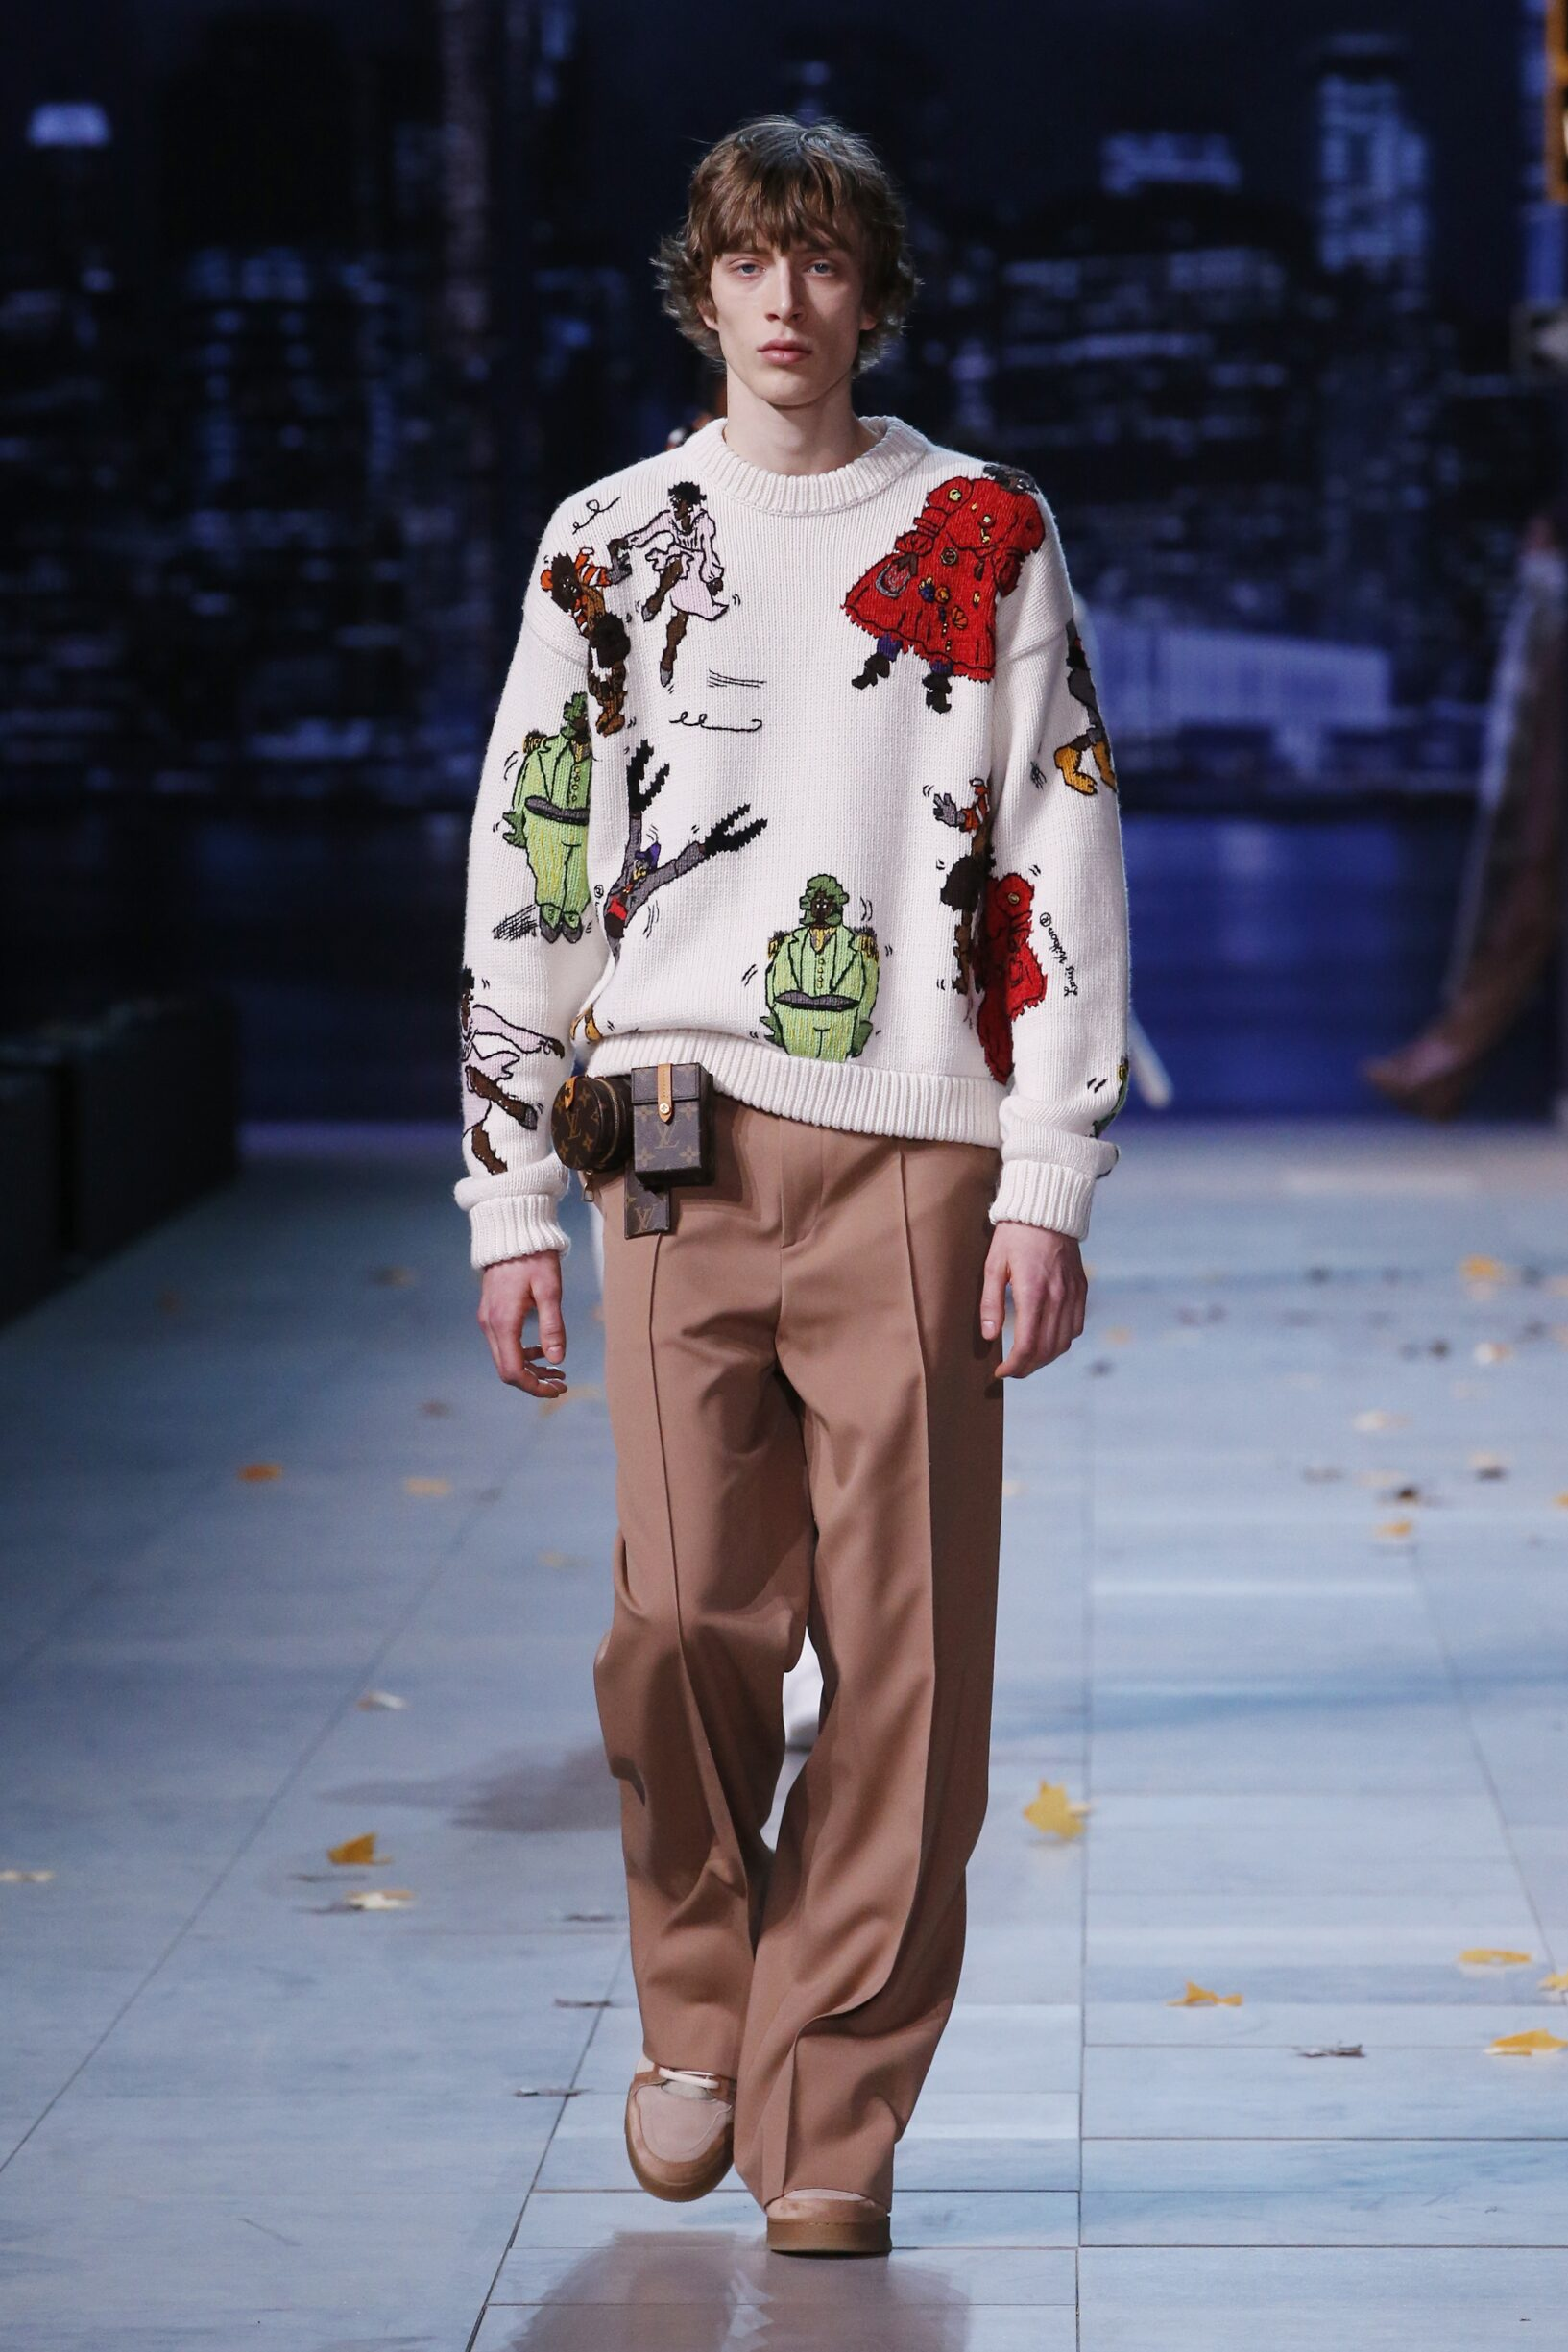 Louis Vuitton Paris Fashion Week Menswear